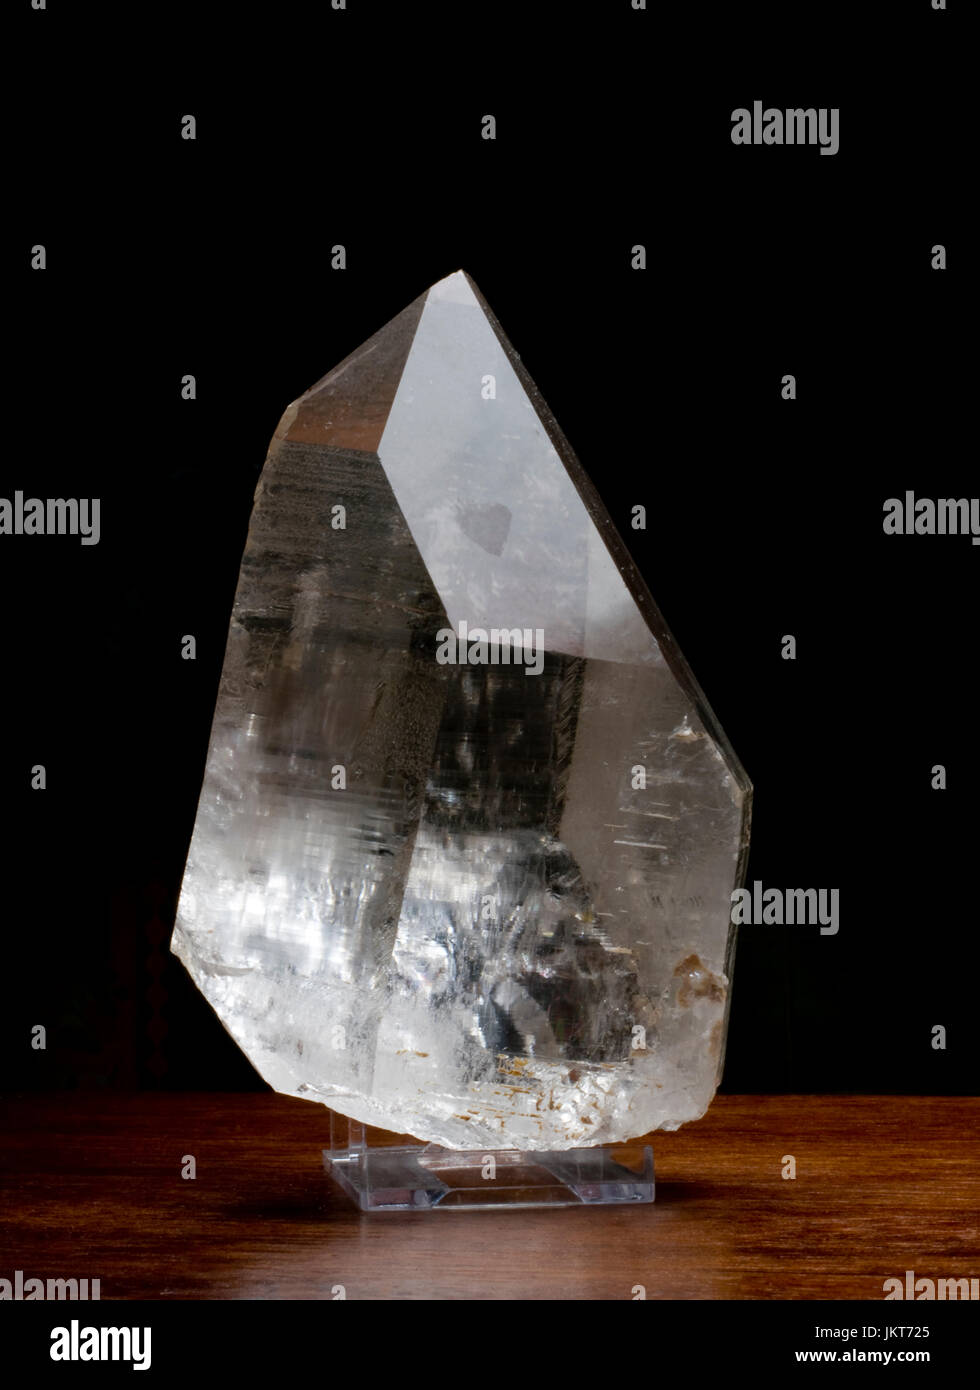 Clear Rock Crystal on a wooden table against a dark background Stock Photo